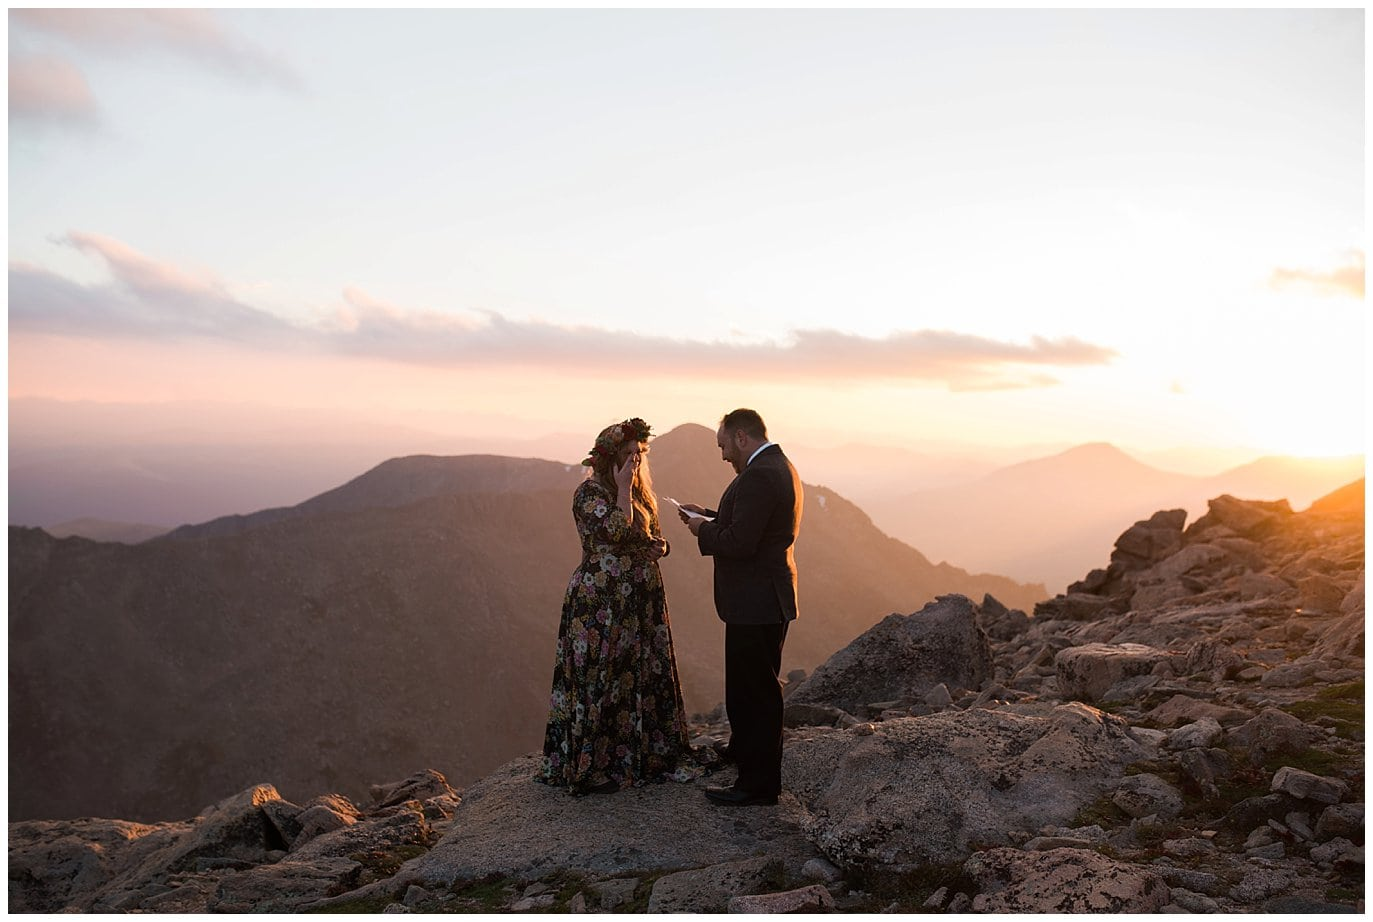 Mt. Evans Sunset Elopement photo